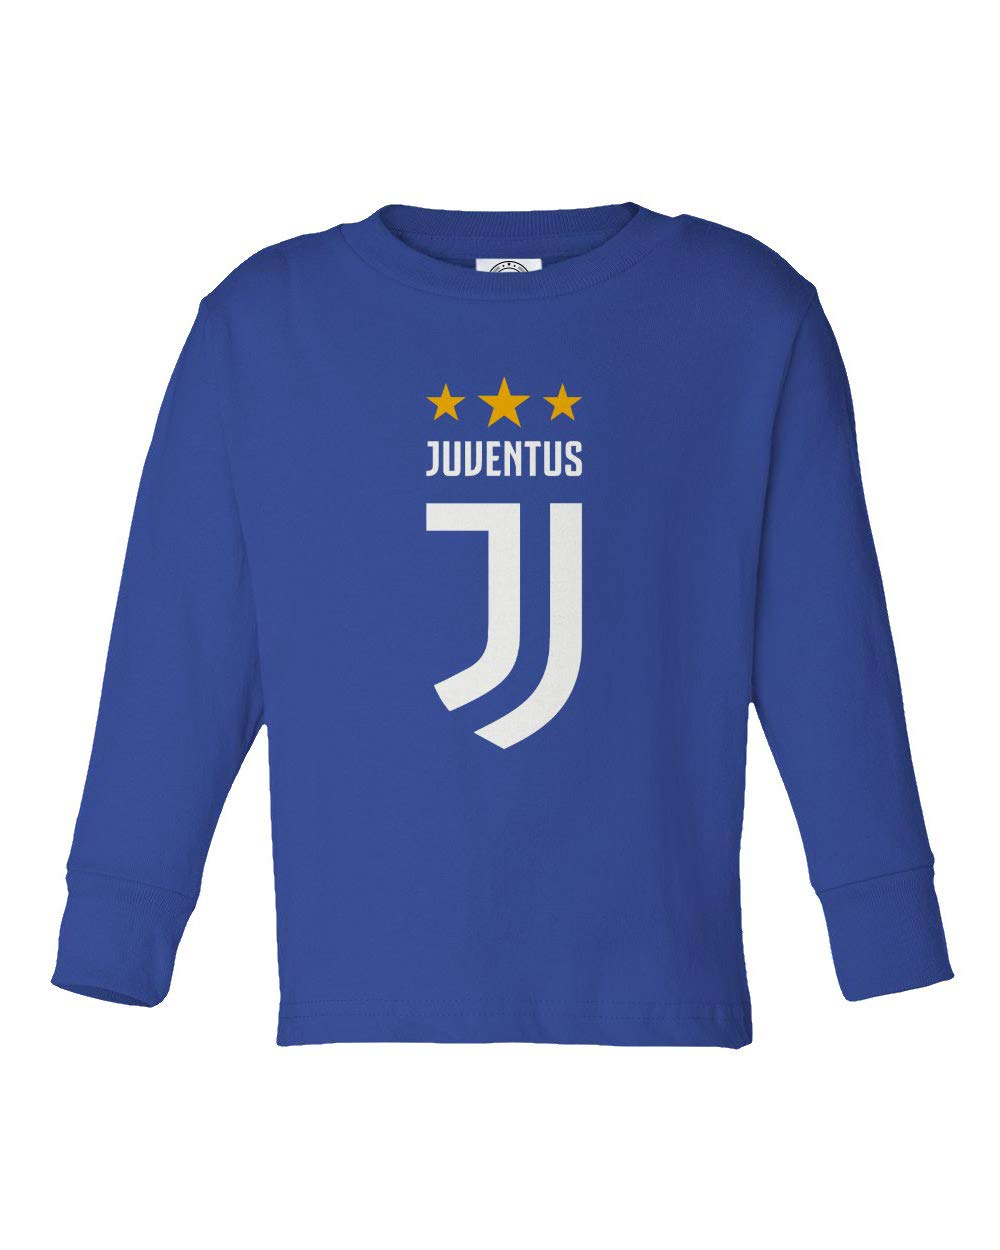 9c2596ea8 Amazon.com  Spark Apparel Soccer Shirt  7 Cristiano Ronaldo CR7 Little Kids  Girls Boys Toddler Long Sleeve T-Shirt  Sports   Outdoors